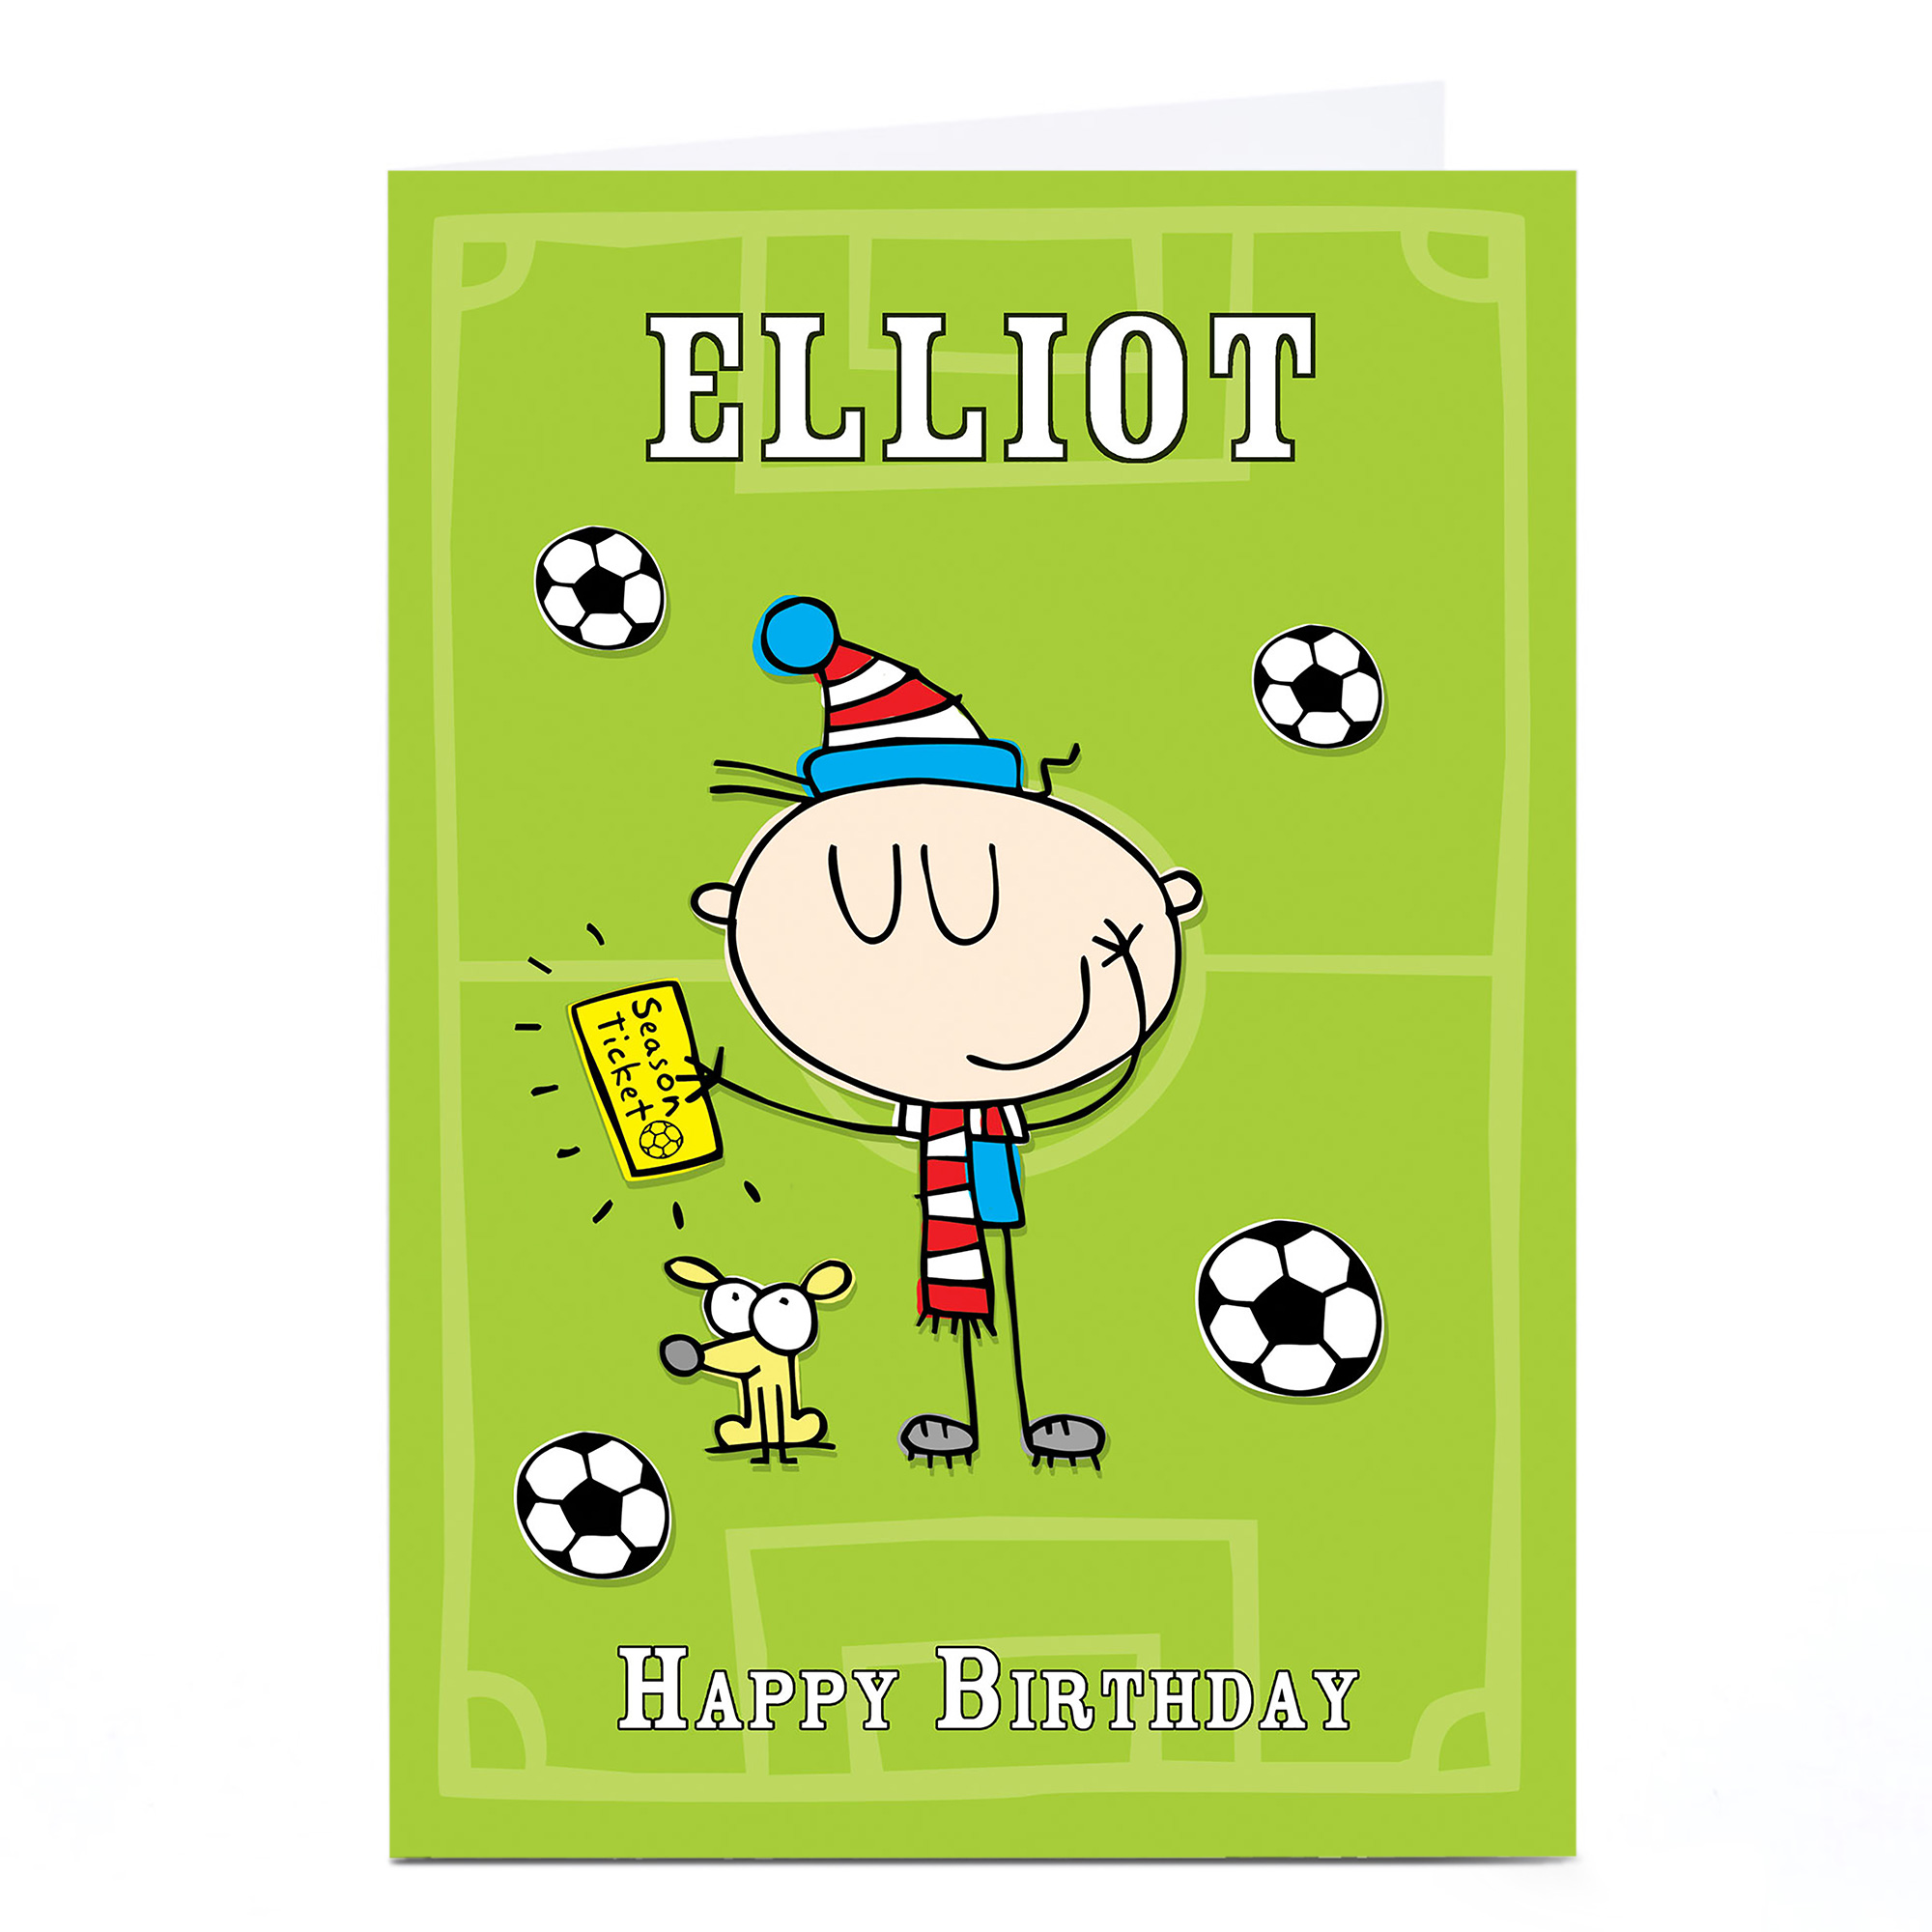 Personalised Birthday Card - Football Supporter